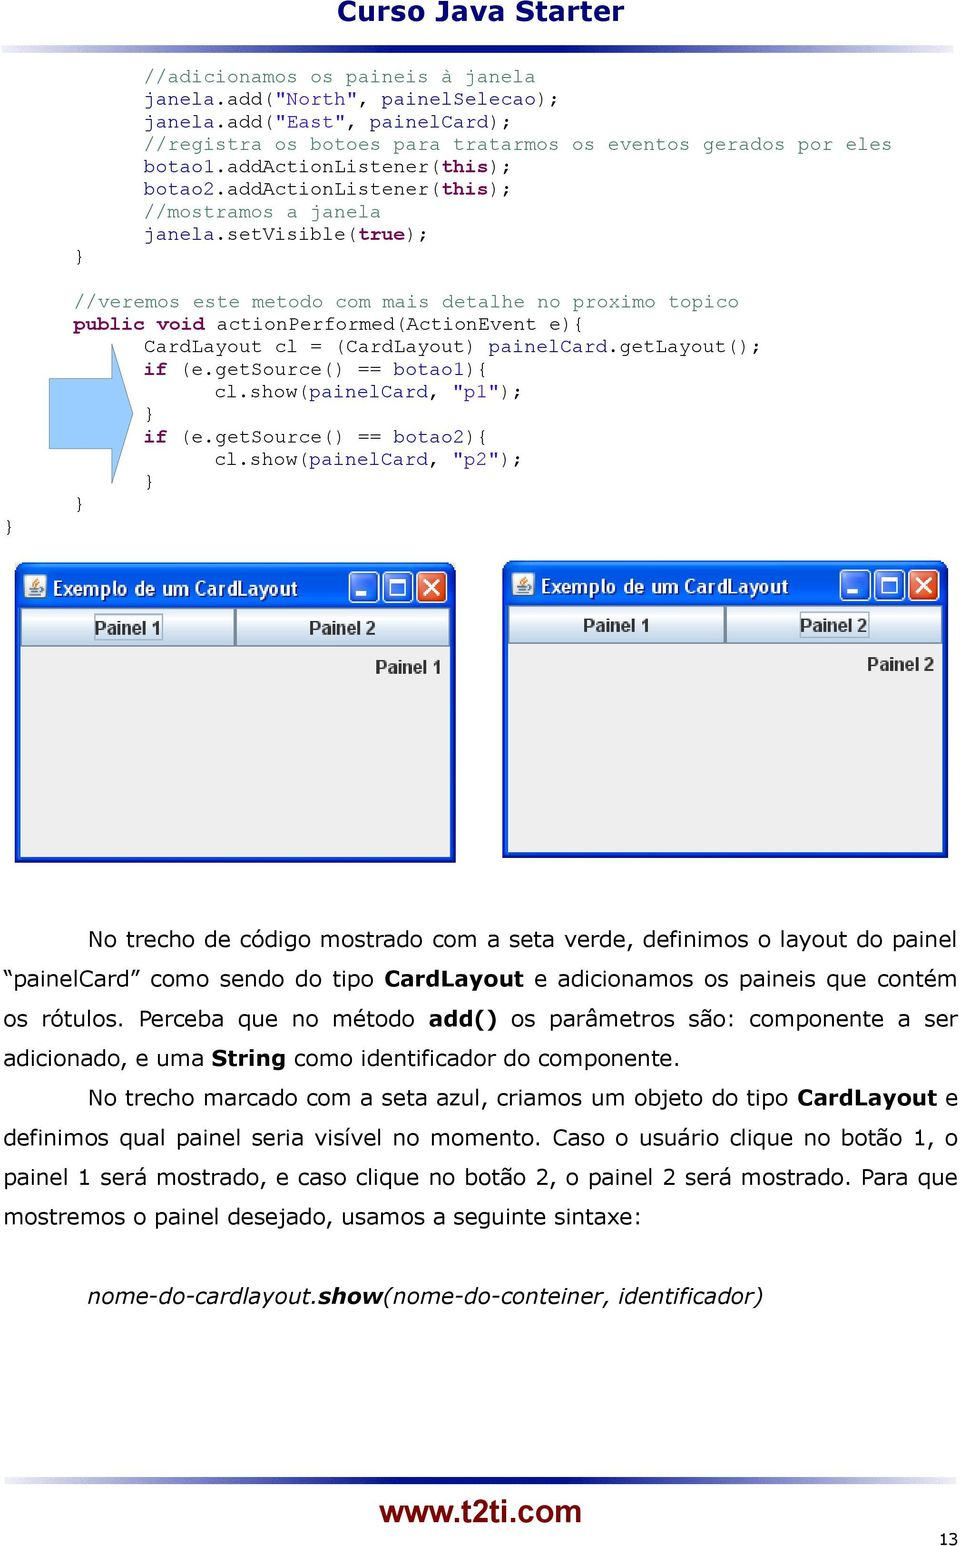 setvisible(true); //veremos este metodo com mais detalhe no proximo topico public void actionperformed(actionevent e){ CardLayout cl = (CardLayout) painelcard.getlayout(); if (e.